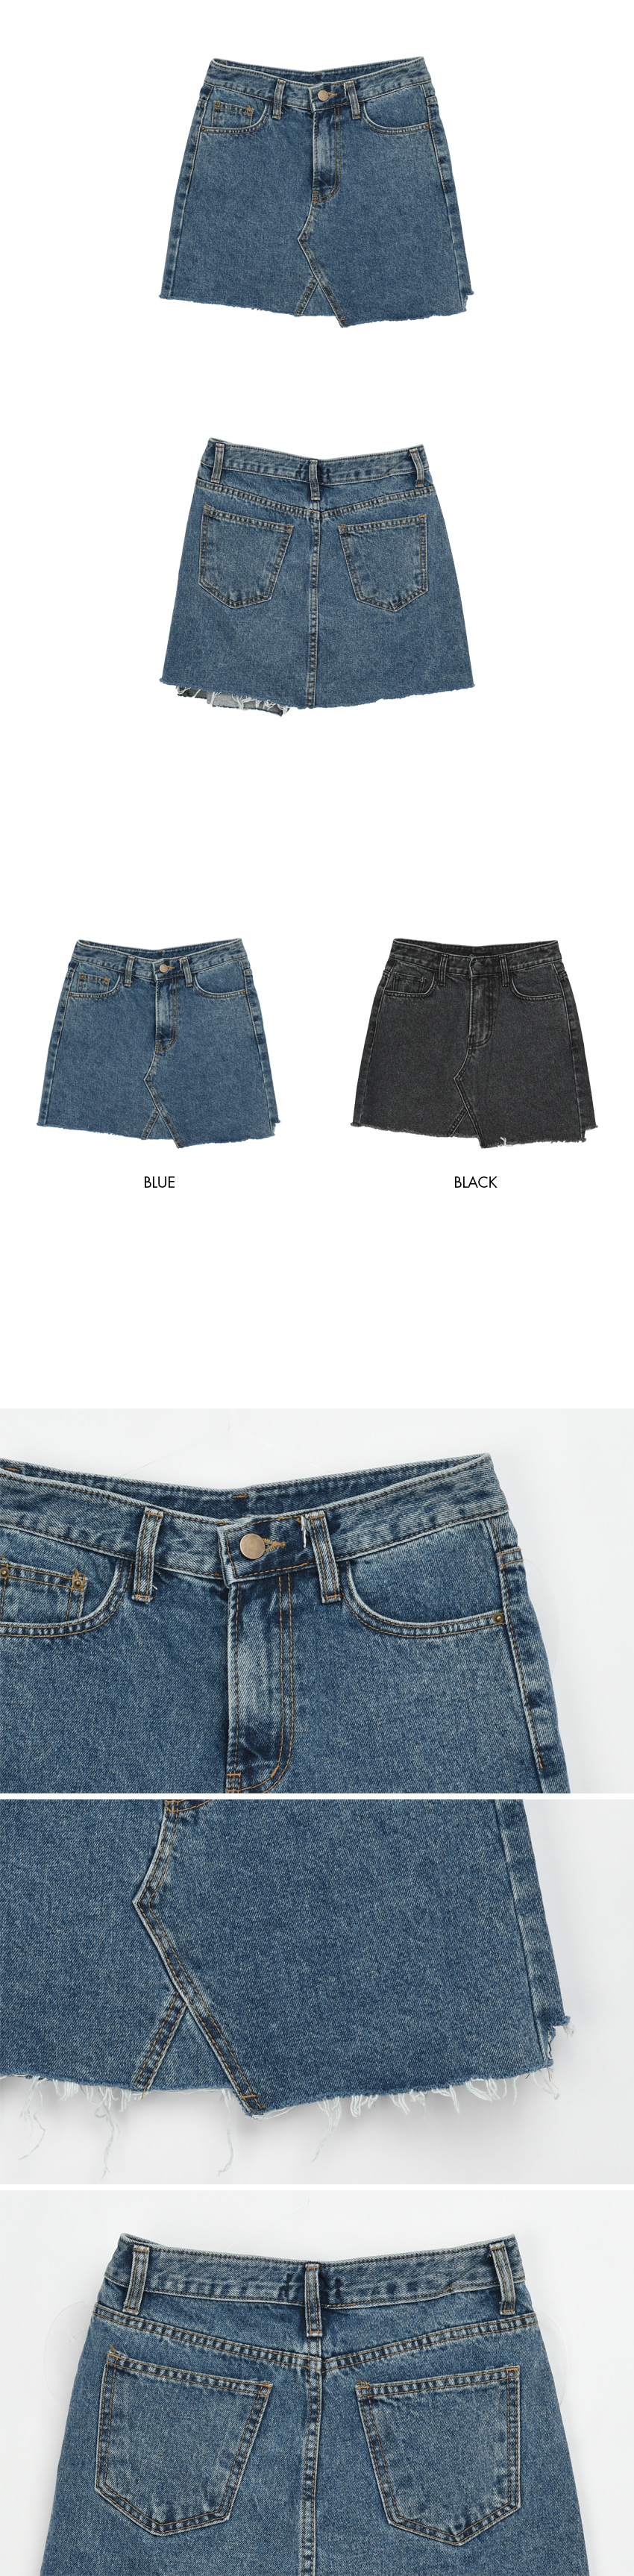 583 denim skirt